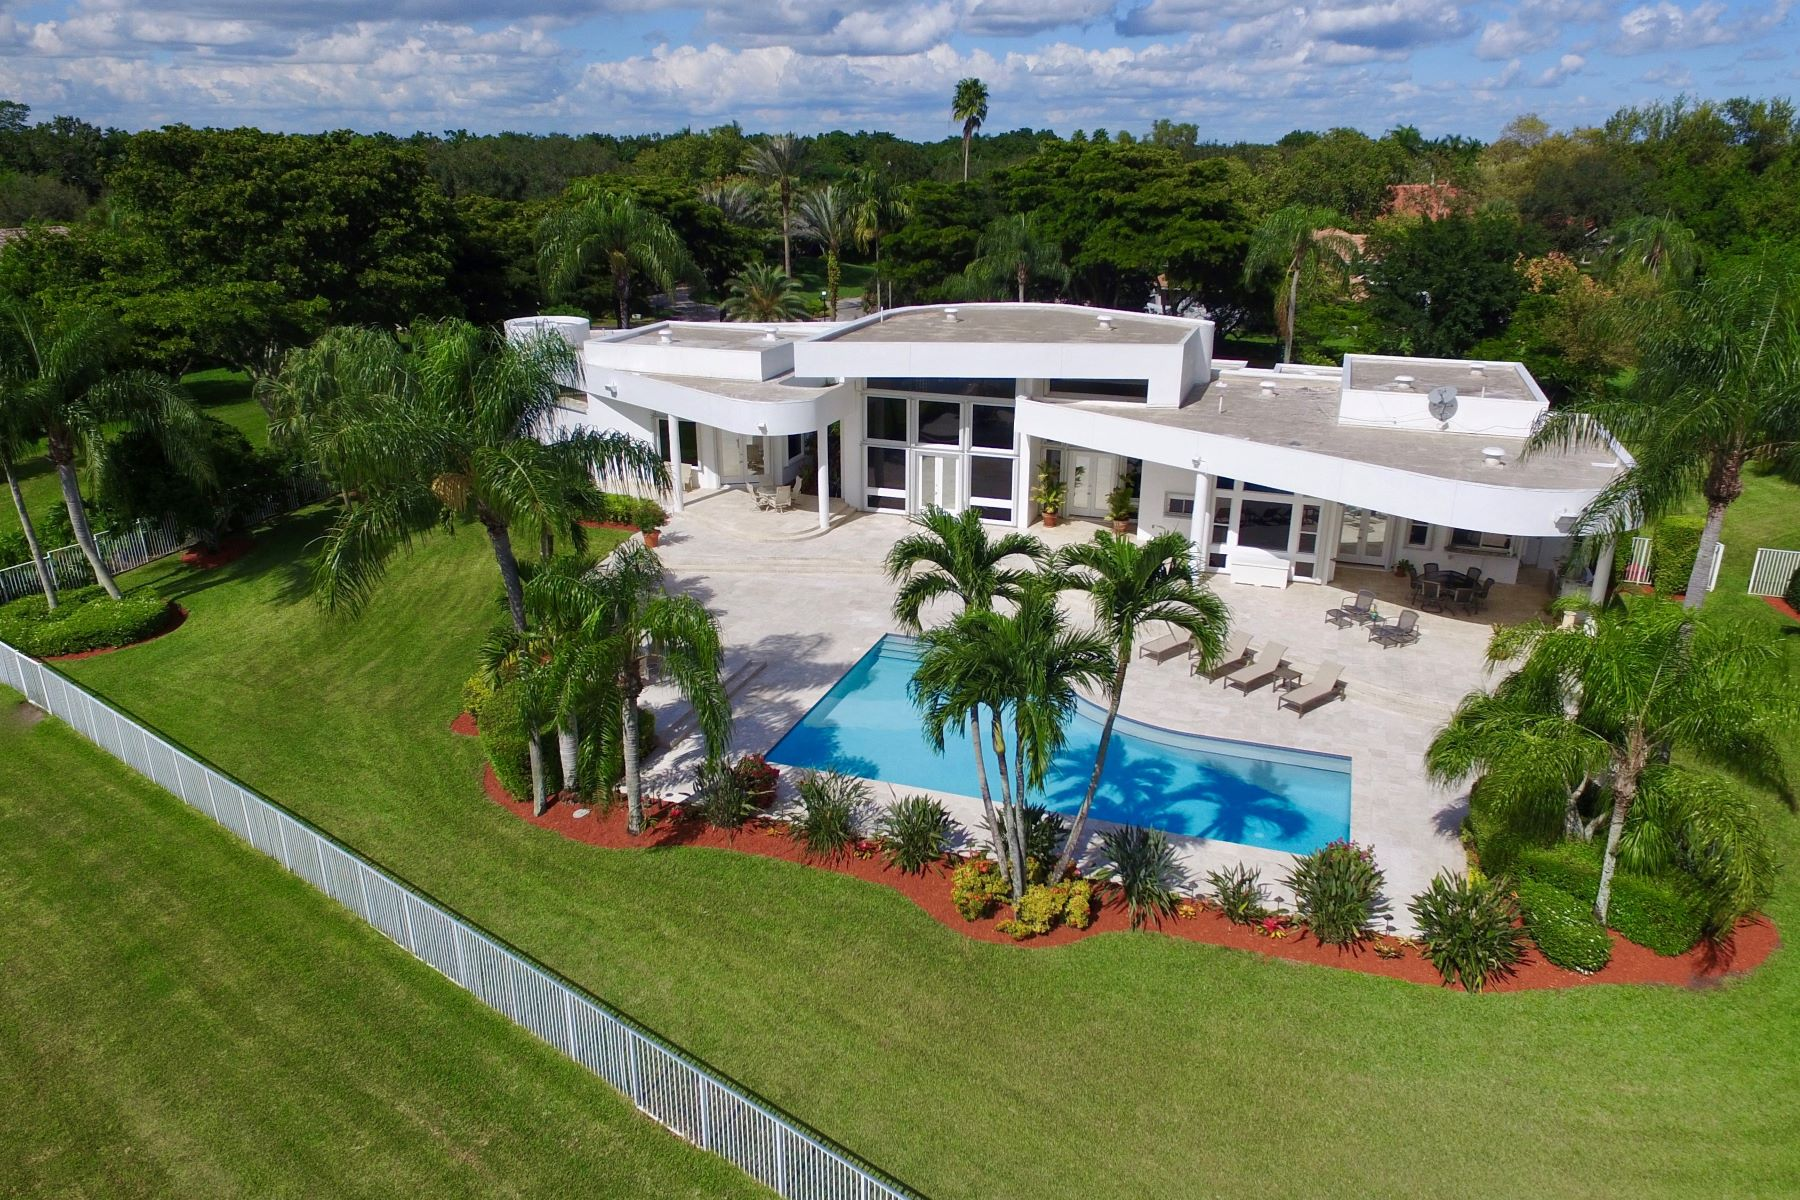 Single Family Homes for Sale at 2895 Luckie Rd Weston, Florida 33331 United States